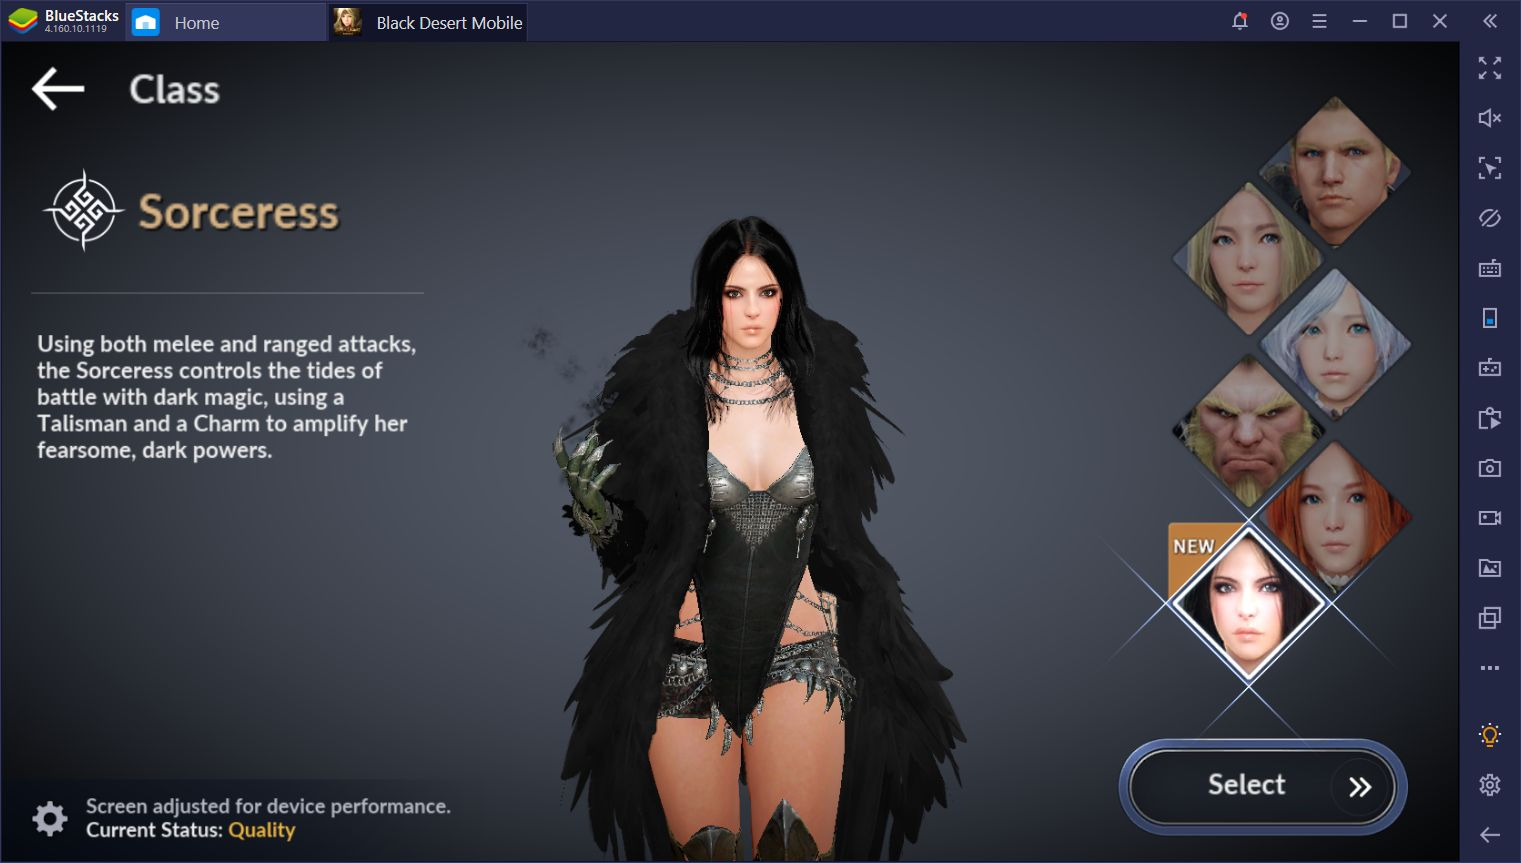 The New Sorceress Class in Black Desert Mobile - First Impressions and Tips